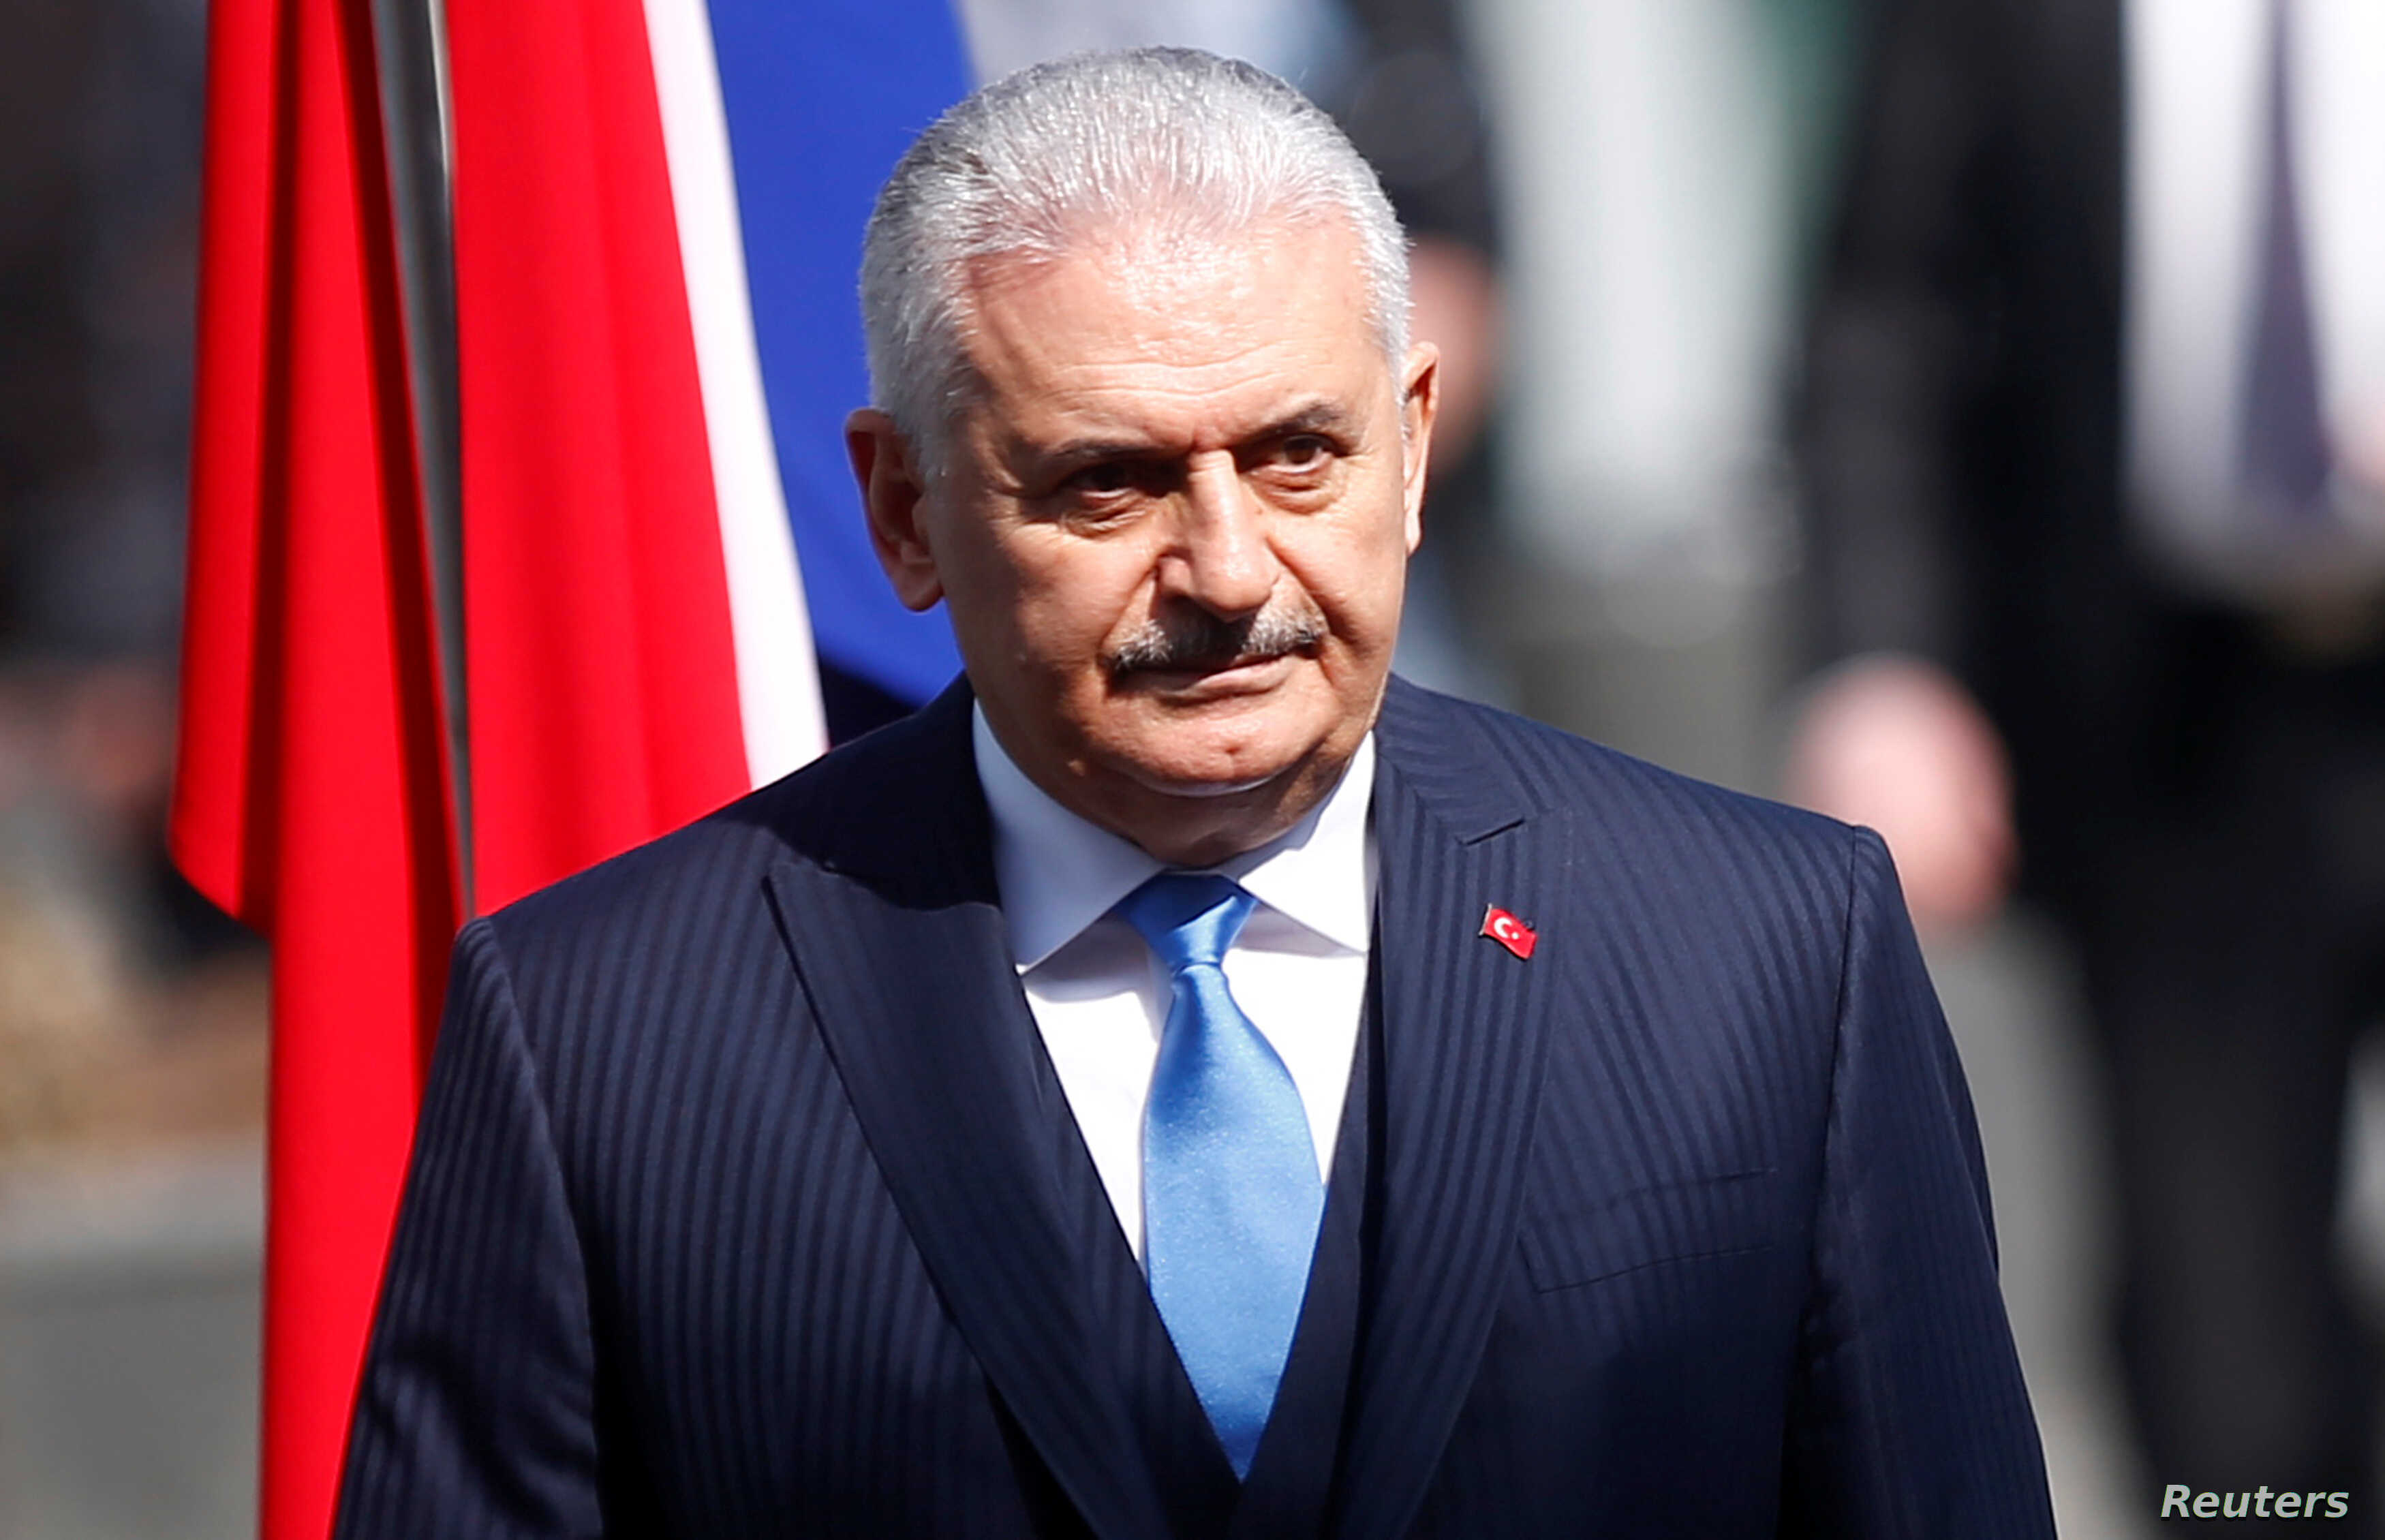 Turkish Prime Minister Binali Yildirim is seen during a visit to Sarajevo, Bosnia and Herzegovina, March 29, 2018.